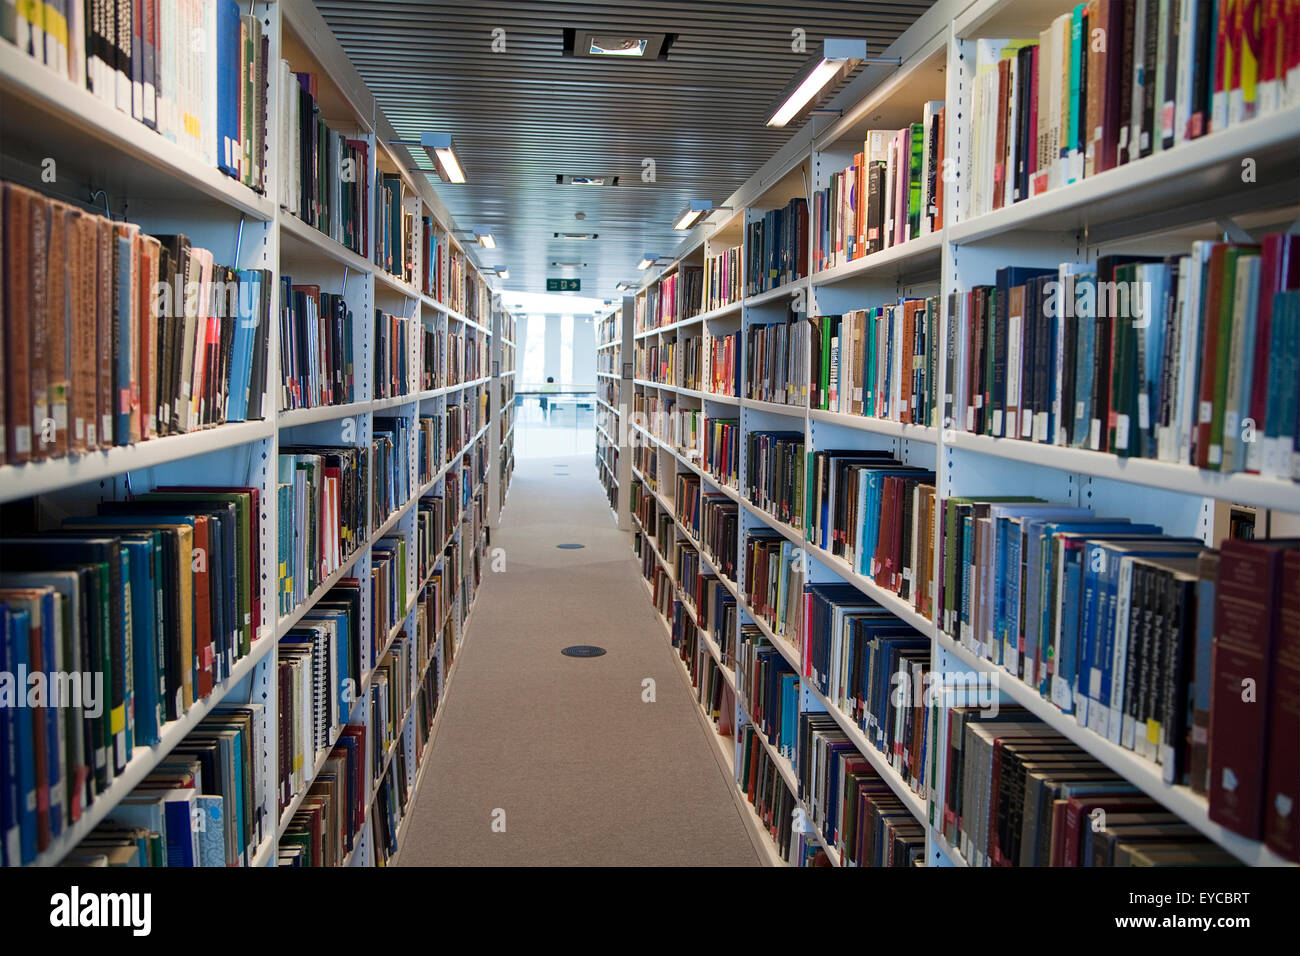 Bookshelves in a university library - Stock Image